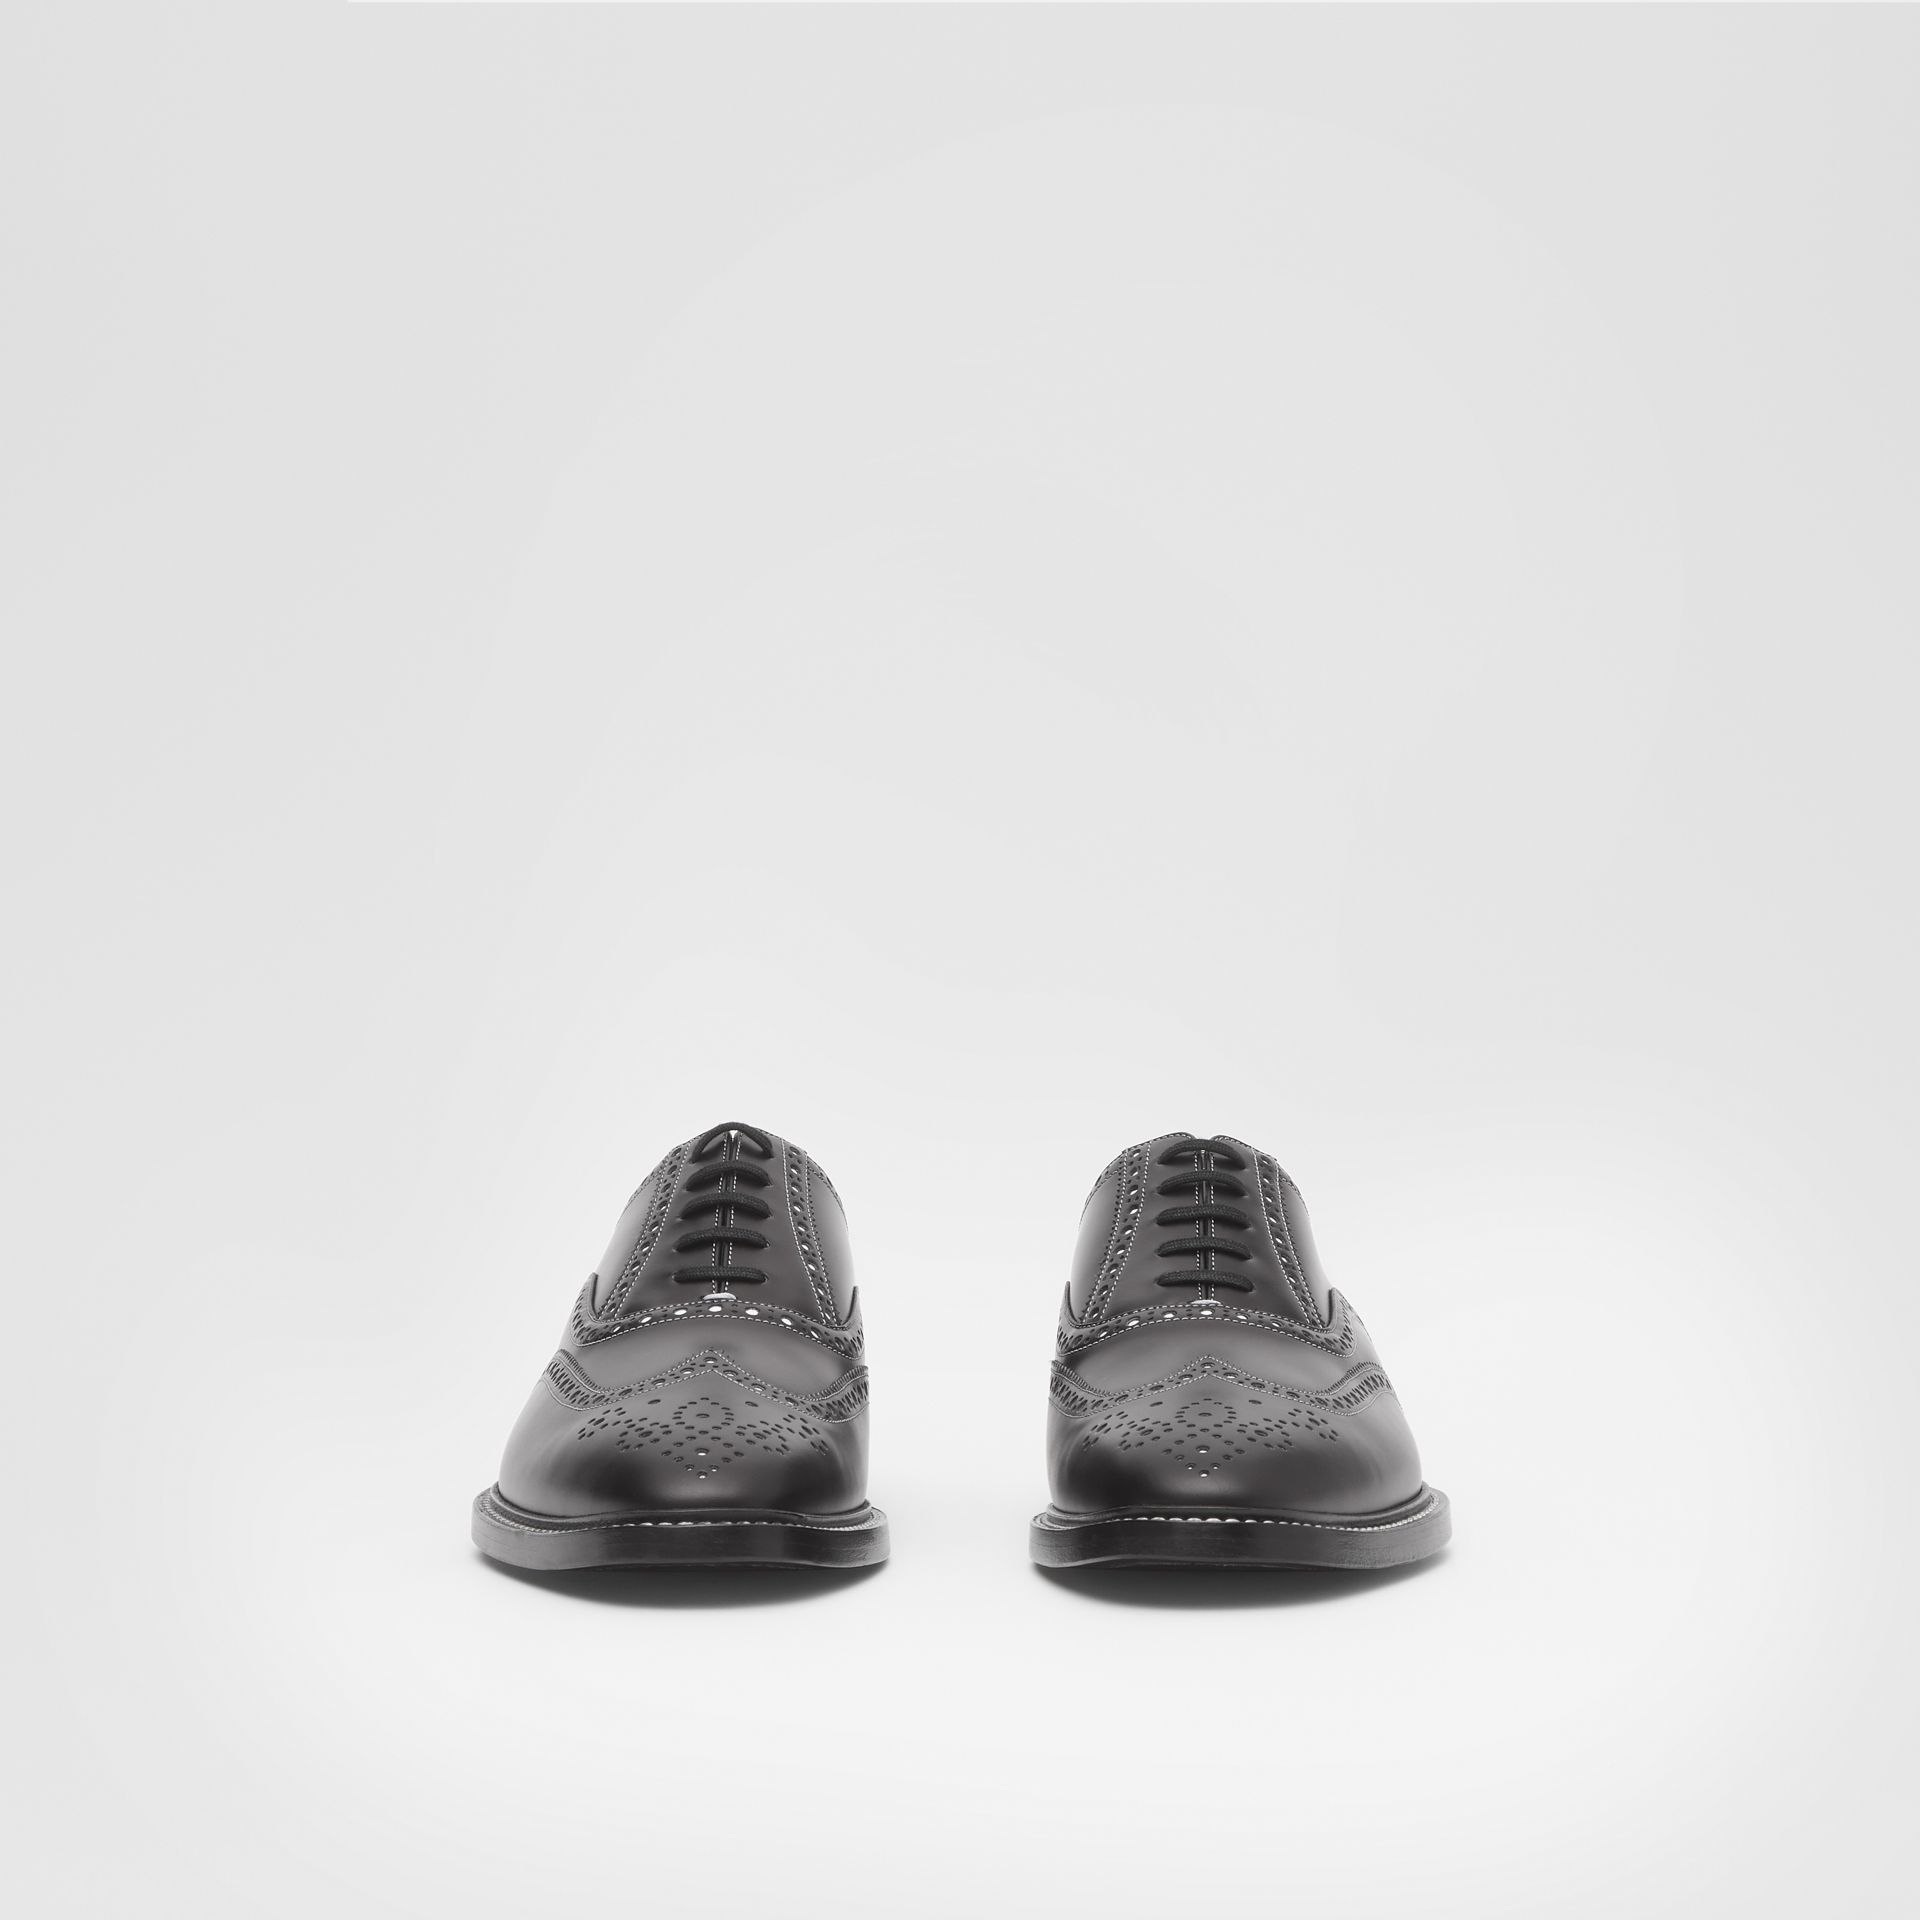 D-ring Detail Two-tone Leather Oxford Brogues in Black/white - Men | Burberry United Kingdom - gallery image 2